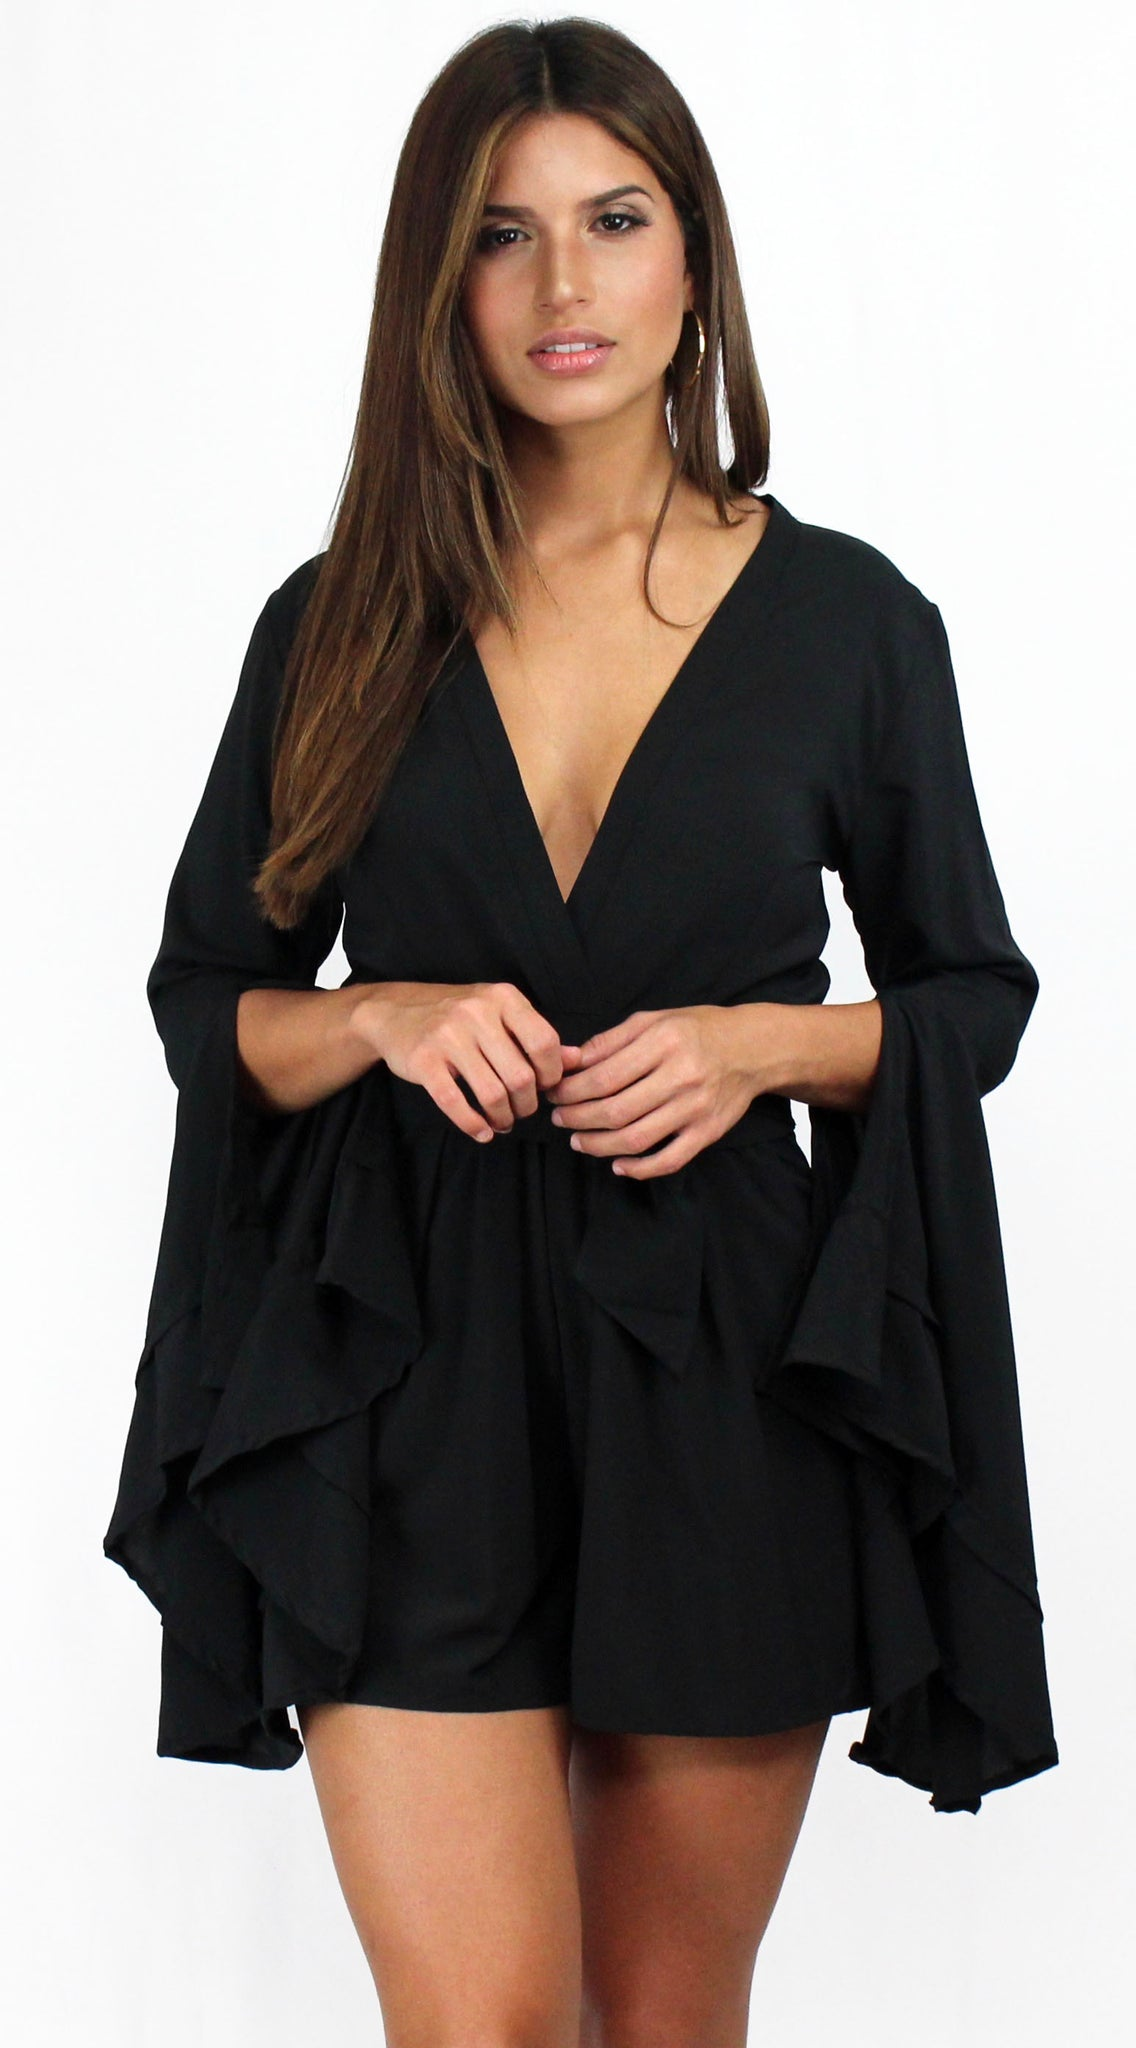 Love Ruffles Sleeves in Black Romper